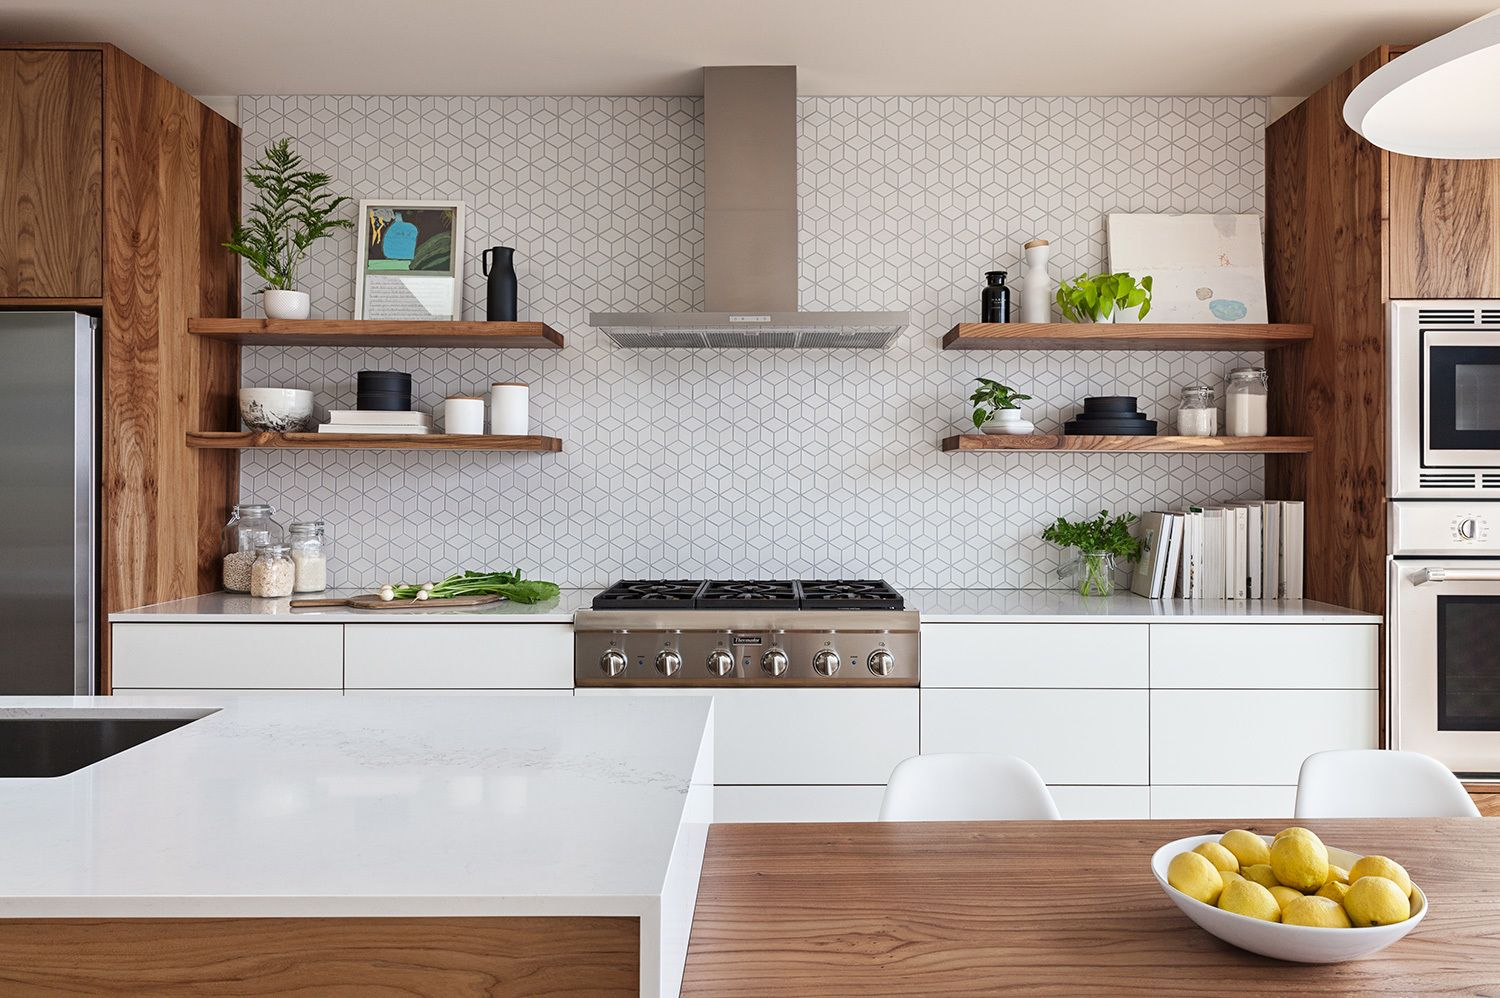 los palmos svk interior design home improvement floating shelf height kitchen the heath ceramics wall tile backsplash was extended full and behind shelves white gold duster toilet